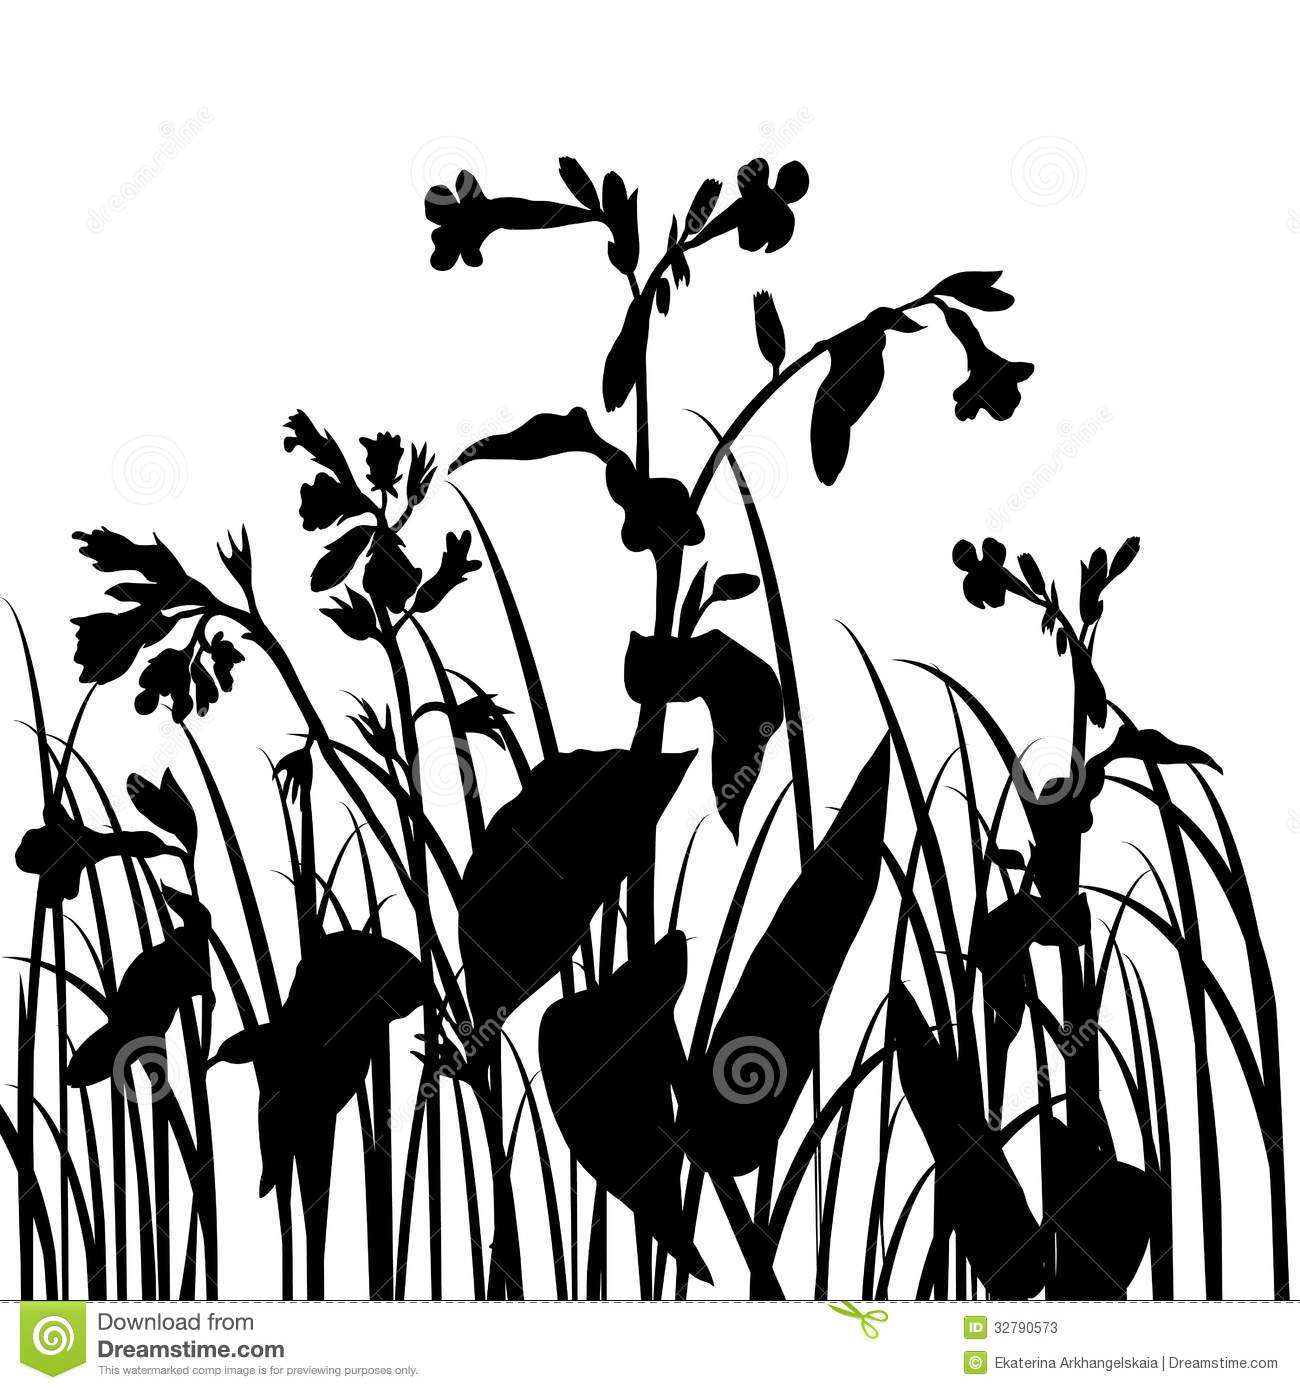 Silhouettes Of Flowers And Grass Stock Vector - Illustration of ...